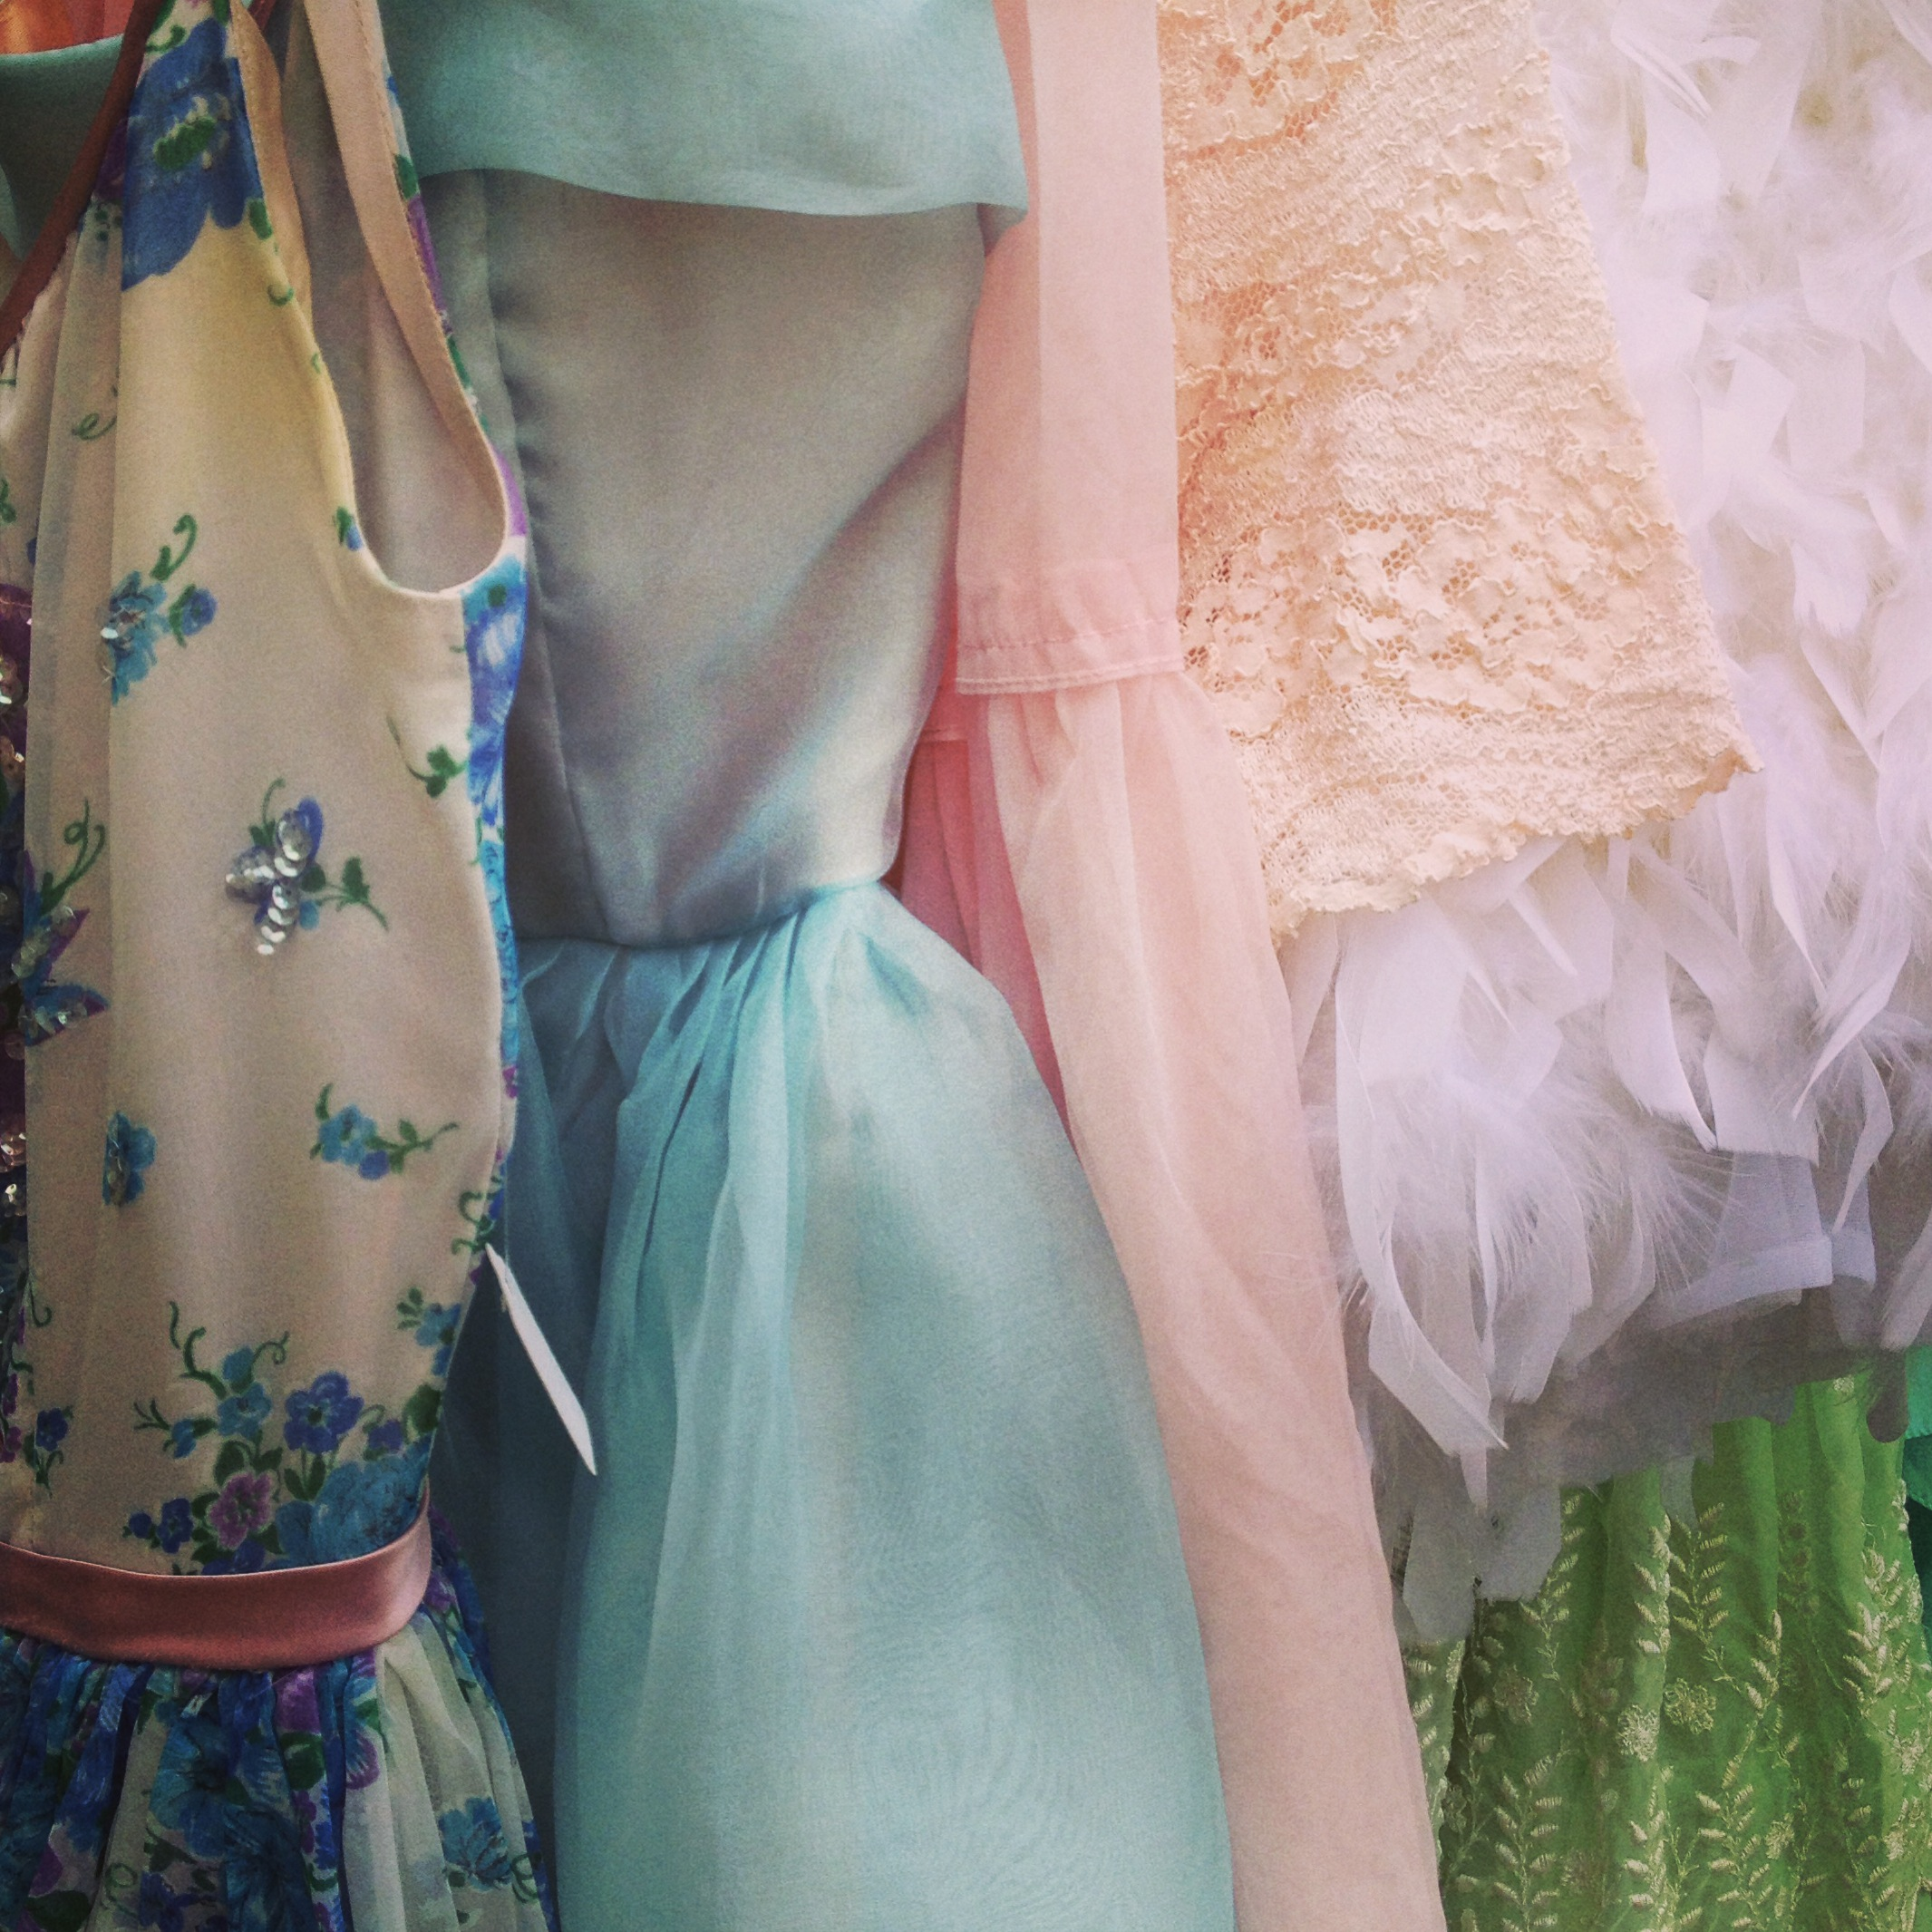 Spring garments at Shareen